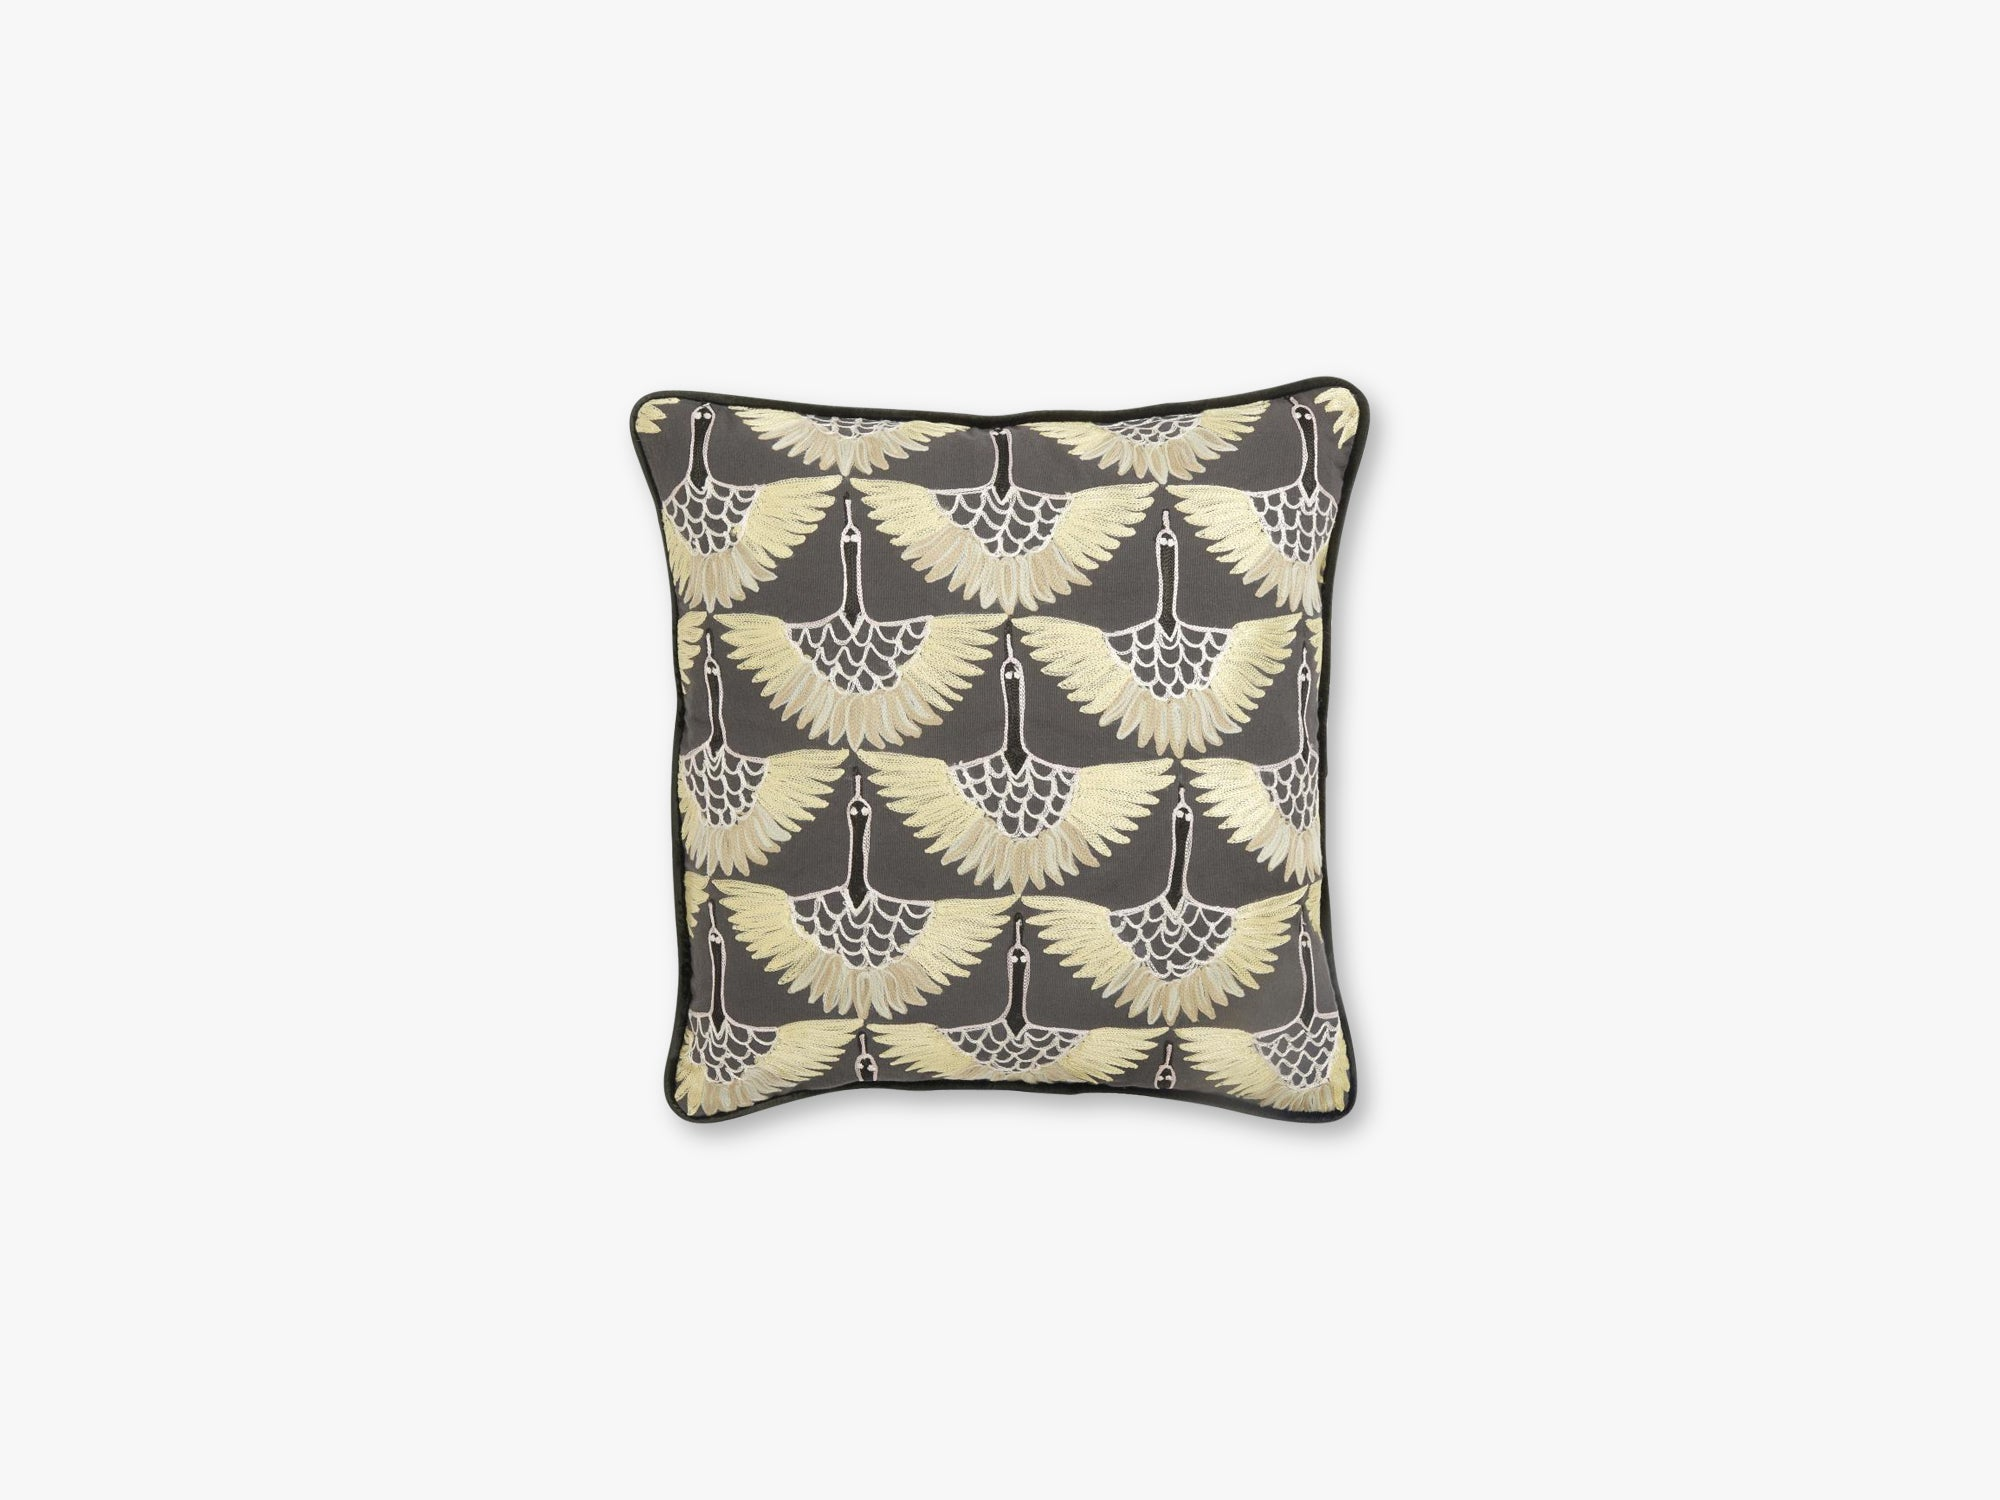 Cushion cover, yellow bird embroidery fra Nordal